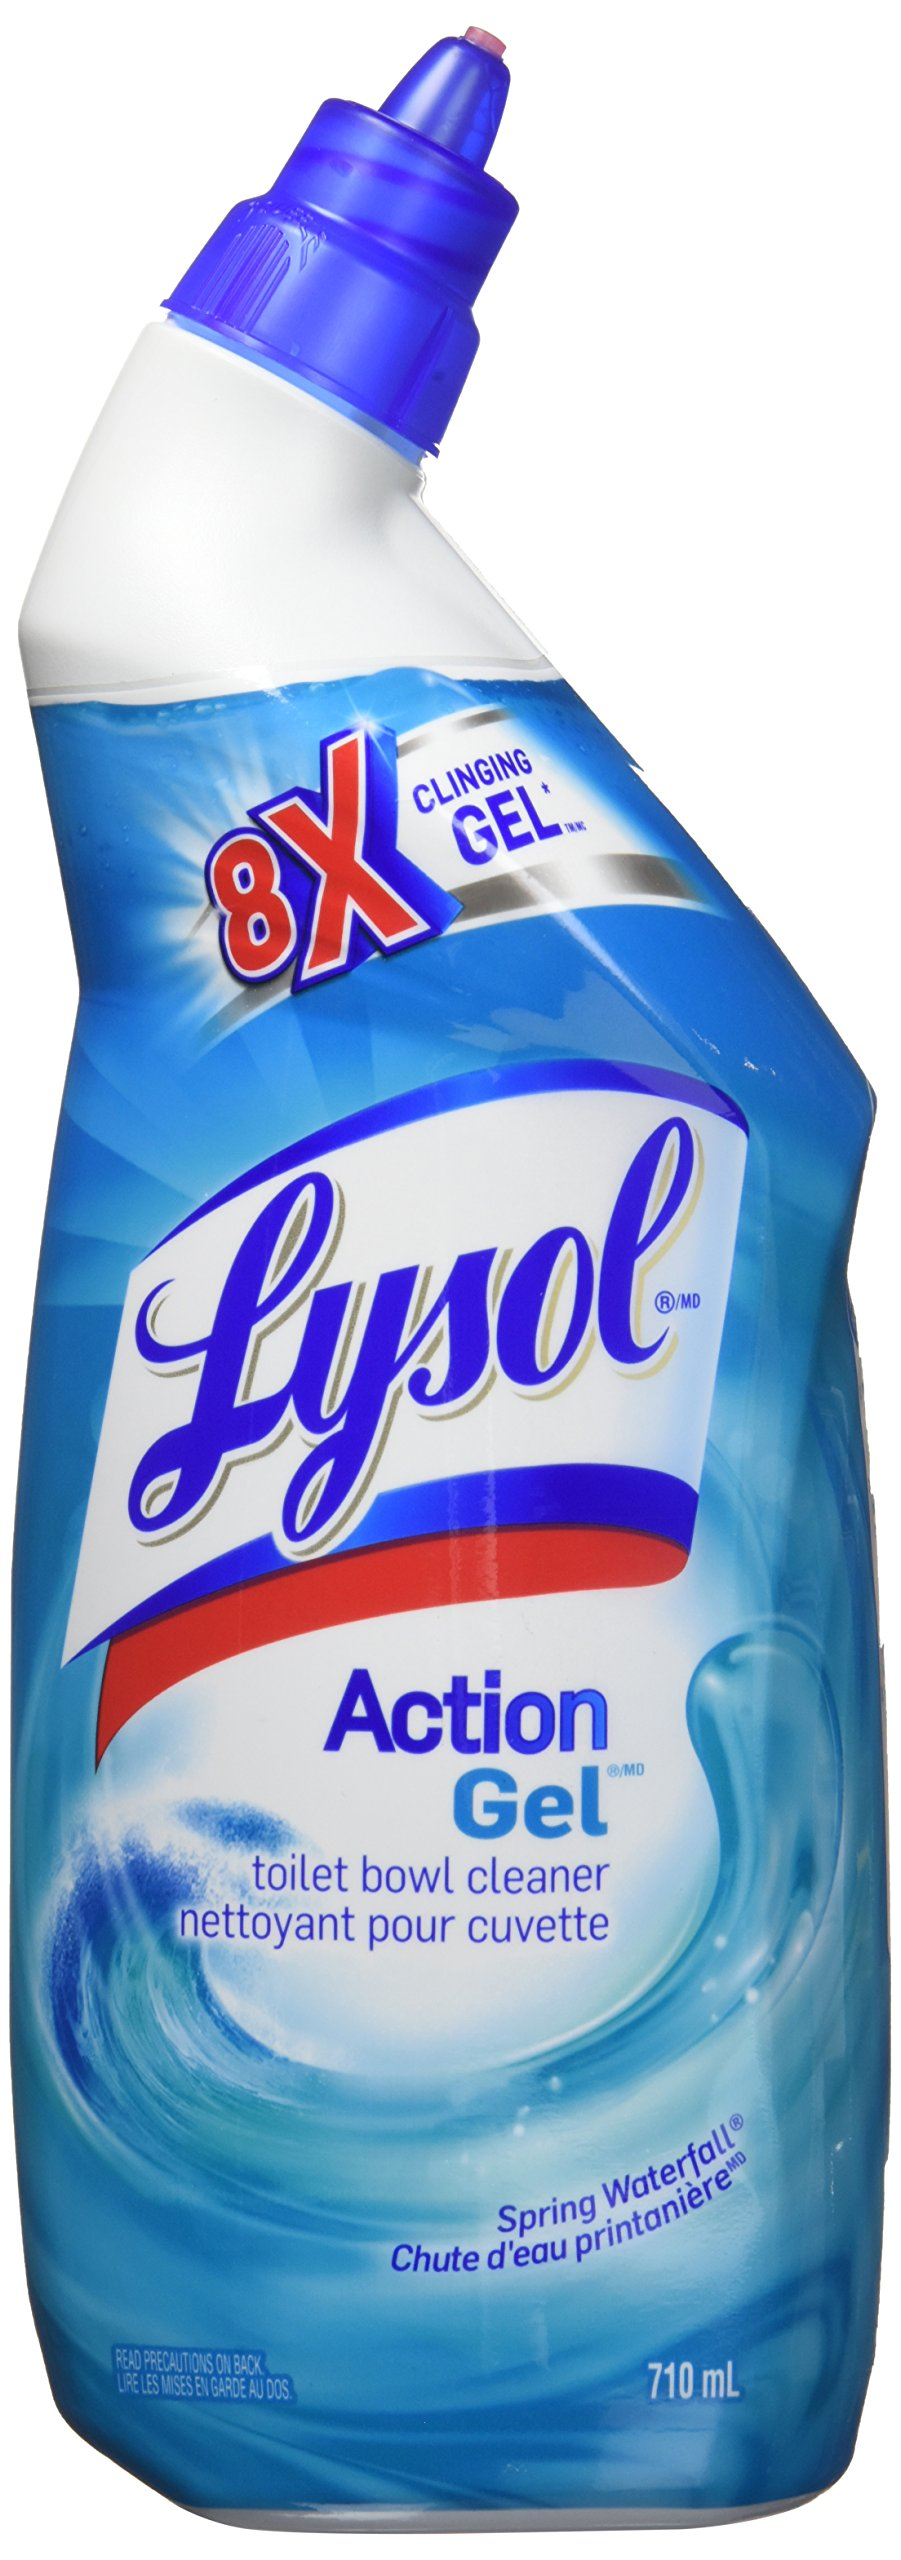 Lysol Toilet Bowl Cleaner, Action Gel, Spring Waterfall, 710ml, 8x Clinging Gel product image